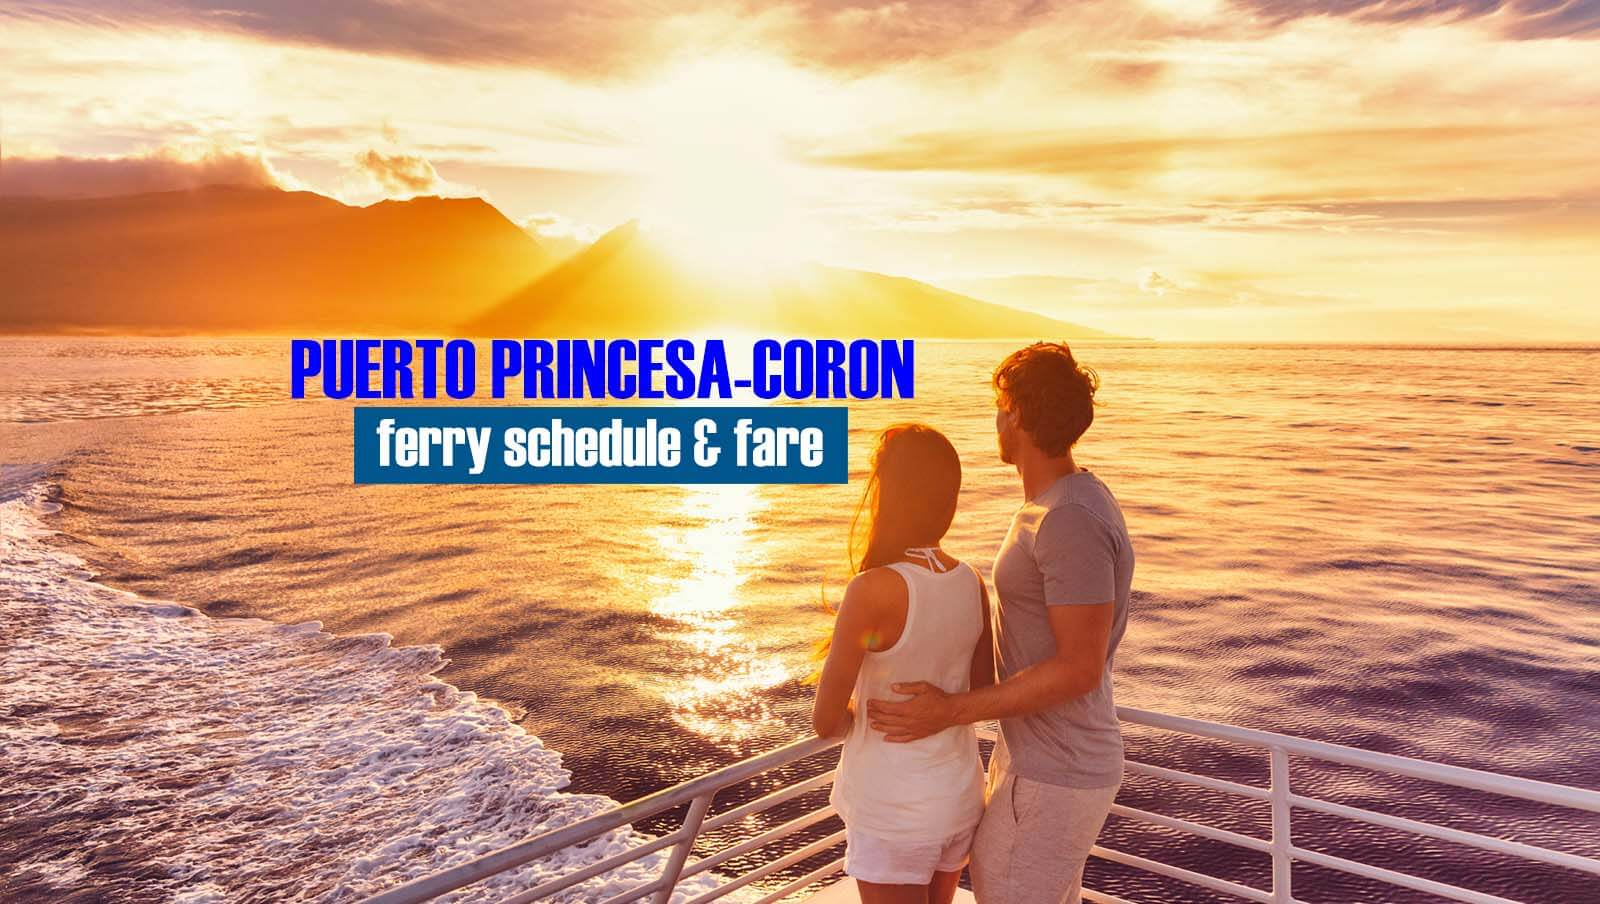 Puerto Princesa to Coron: 2020 Ferry Schedule and Fare